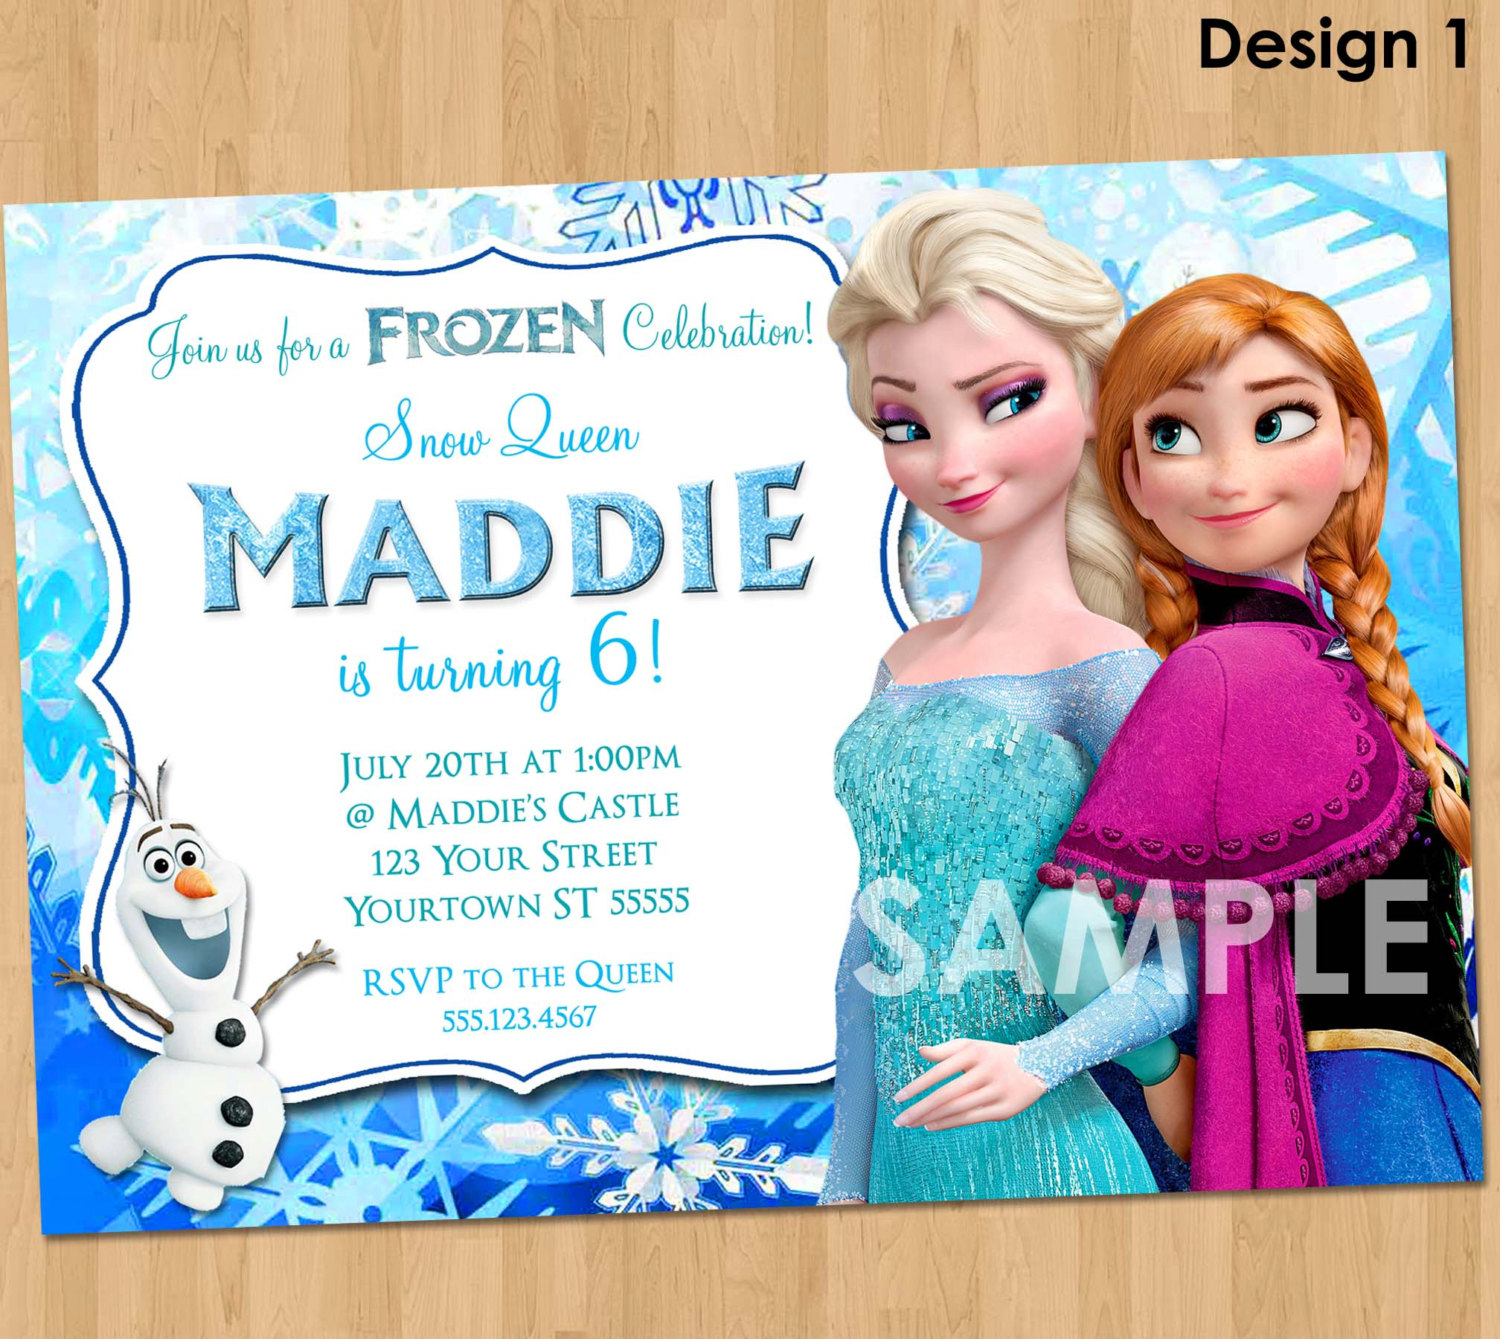 frozen themed birthday invitation ; Frozen-Themed-Birthday-Invitations-to-inspire-you-how-to-create-the-birthday-Invitation-with-the-best-way-1